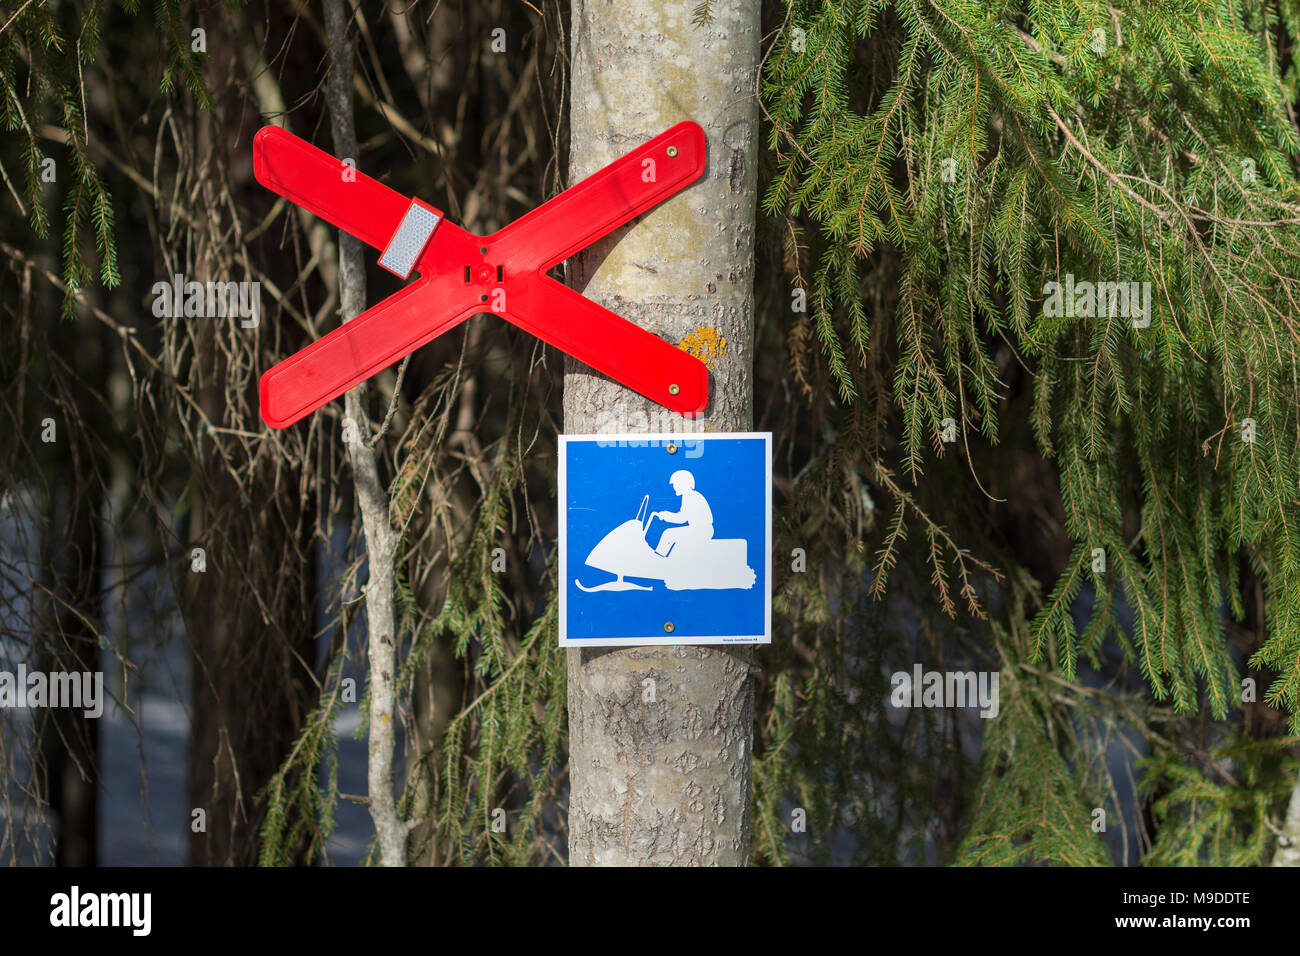 Close up of a trail crossing sign and a snowmobile sign on a tree trunk indicate that this is a designated snowmoble trail. - Stock Image